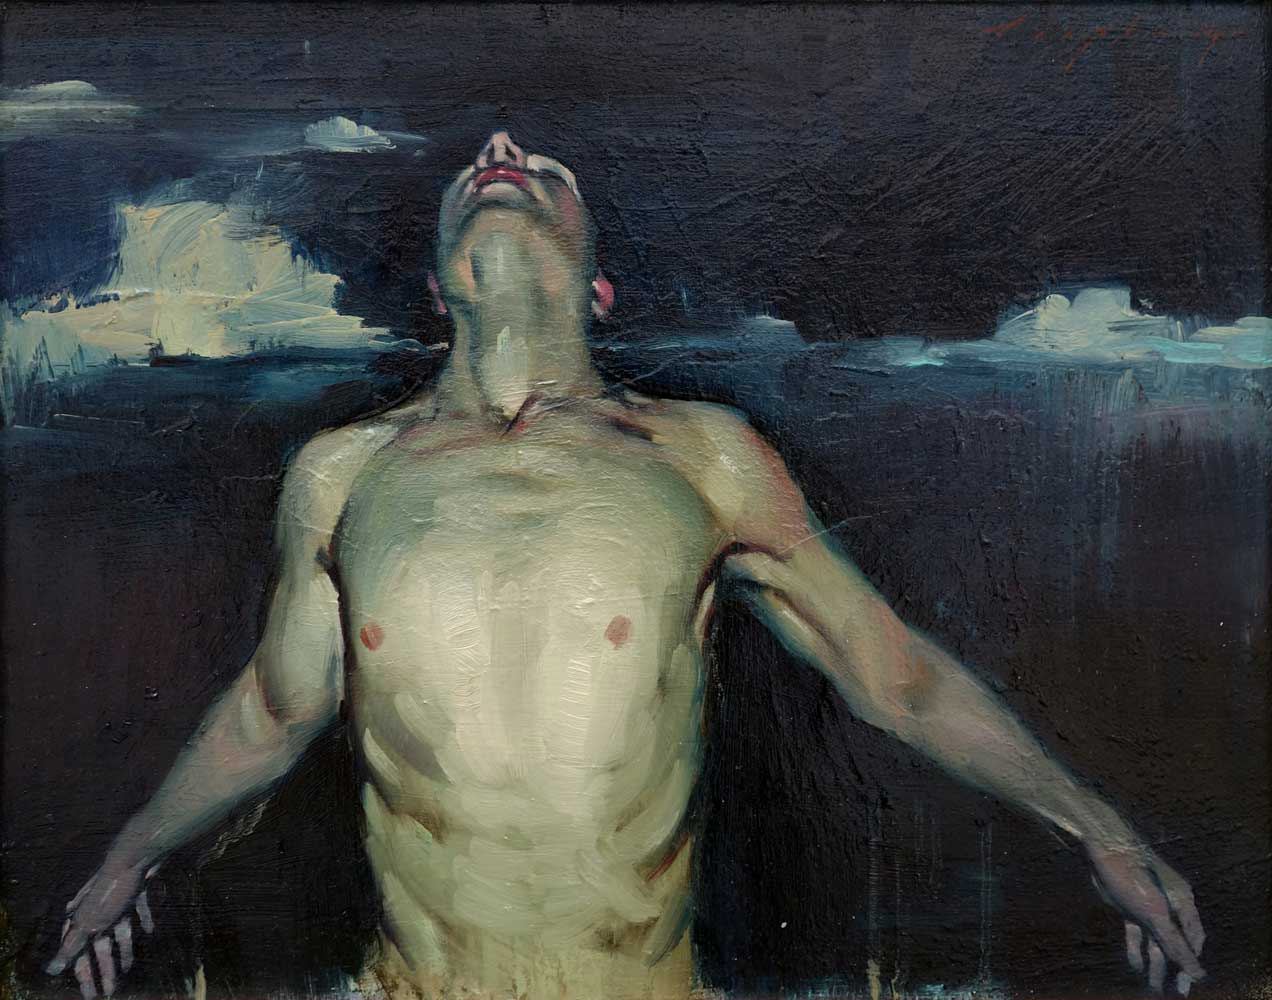 Floating, 2014 by Malcolm T. Liepke | Yellowtrace